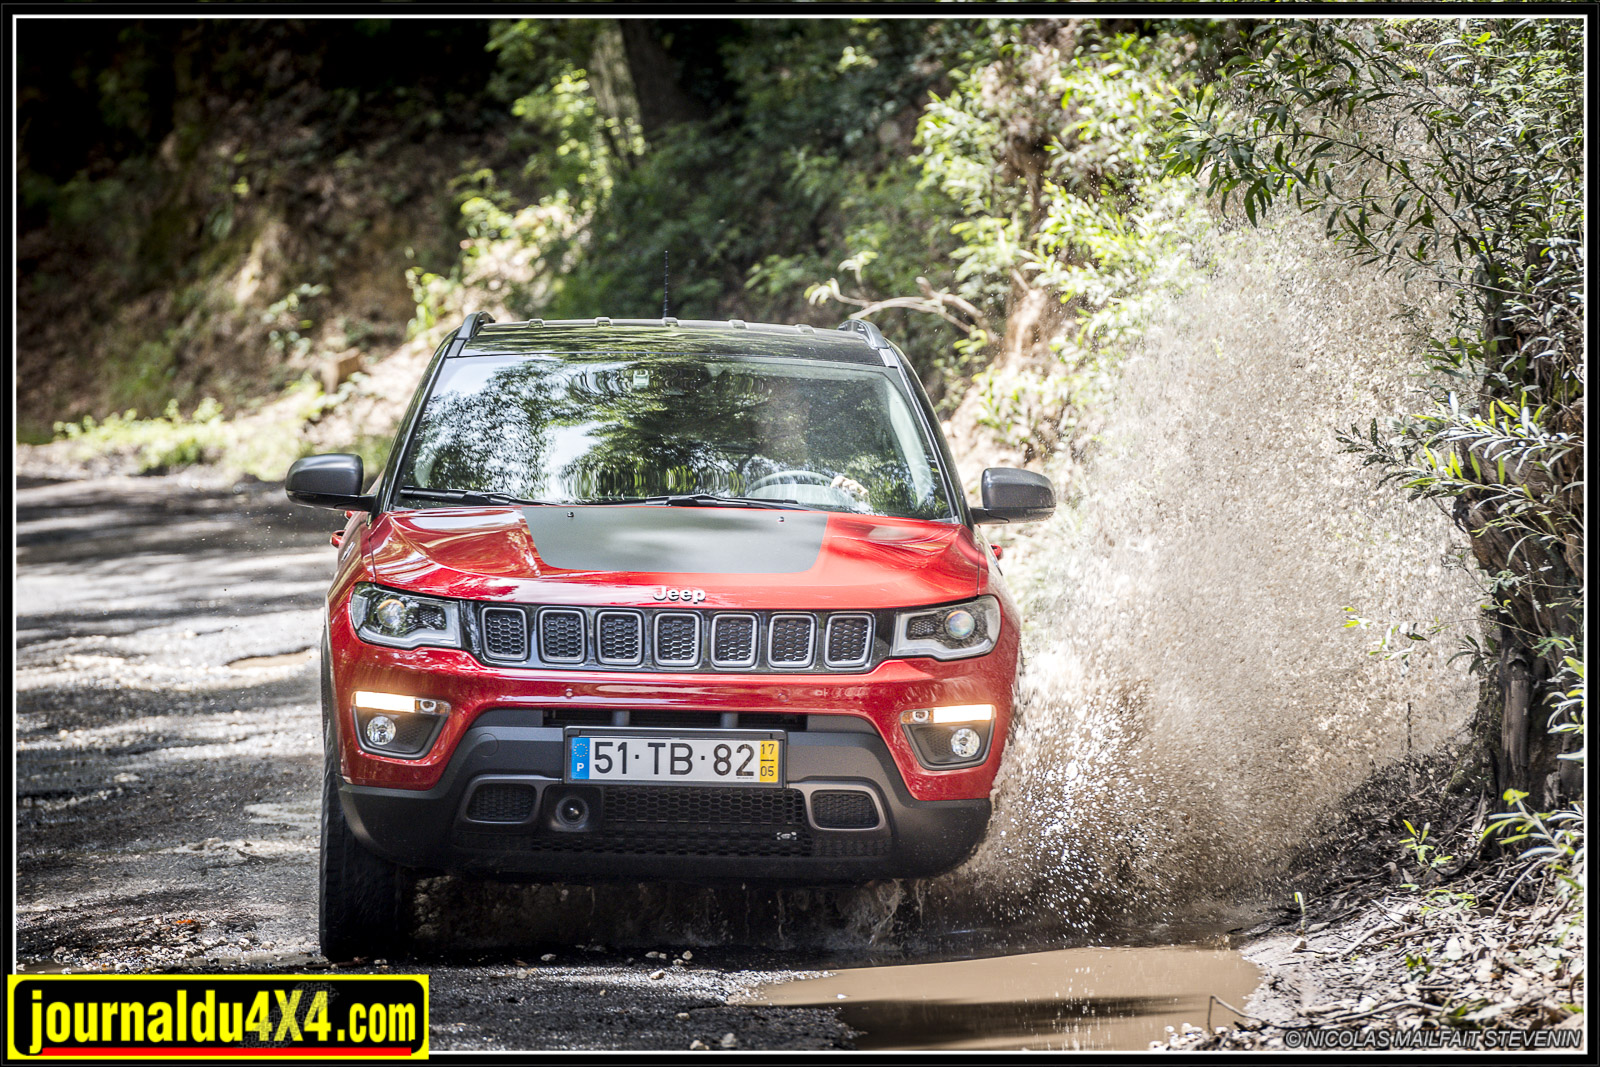 essai-test-jeep-compass-2017-5283.jpg